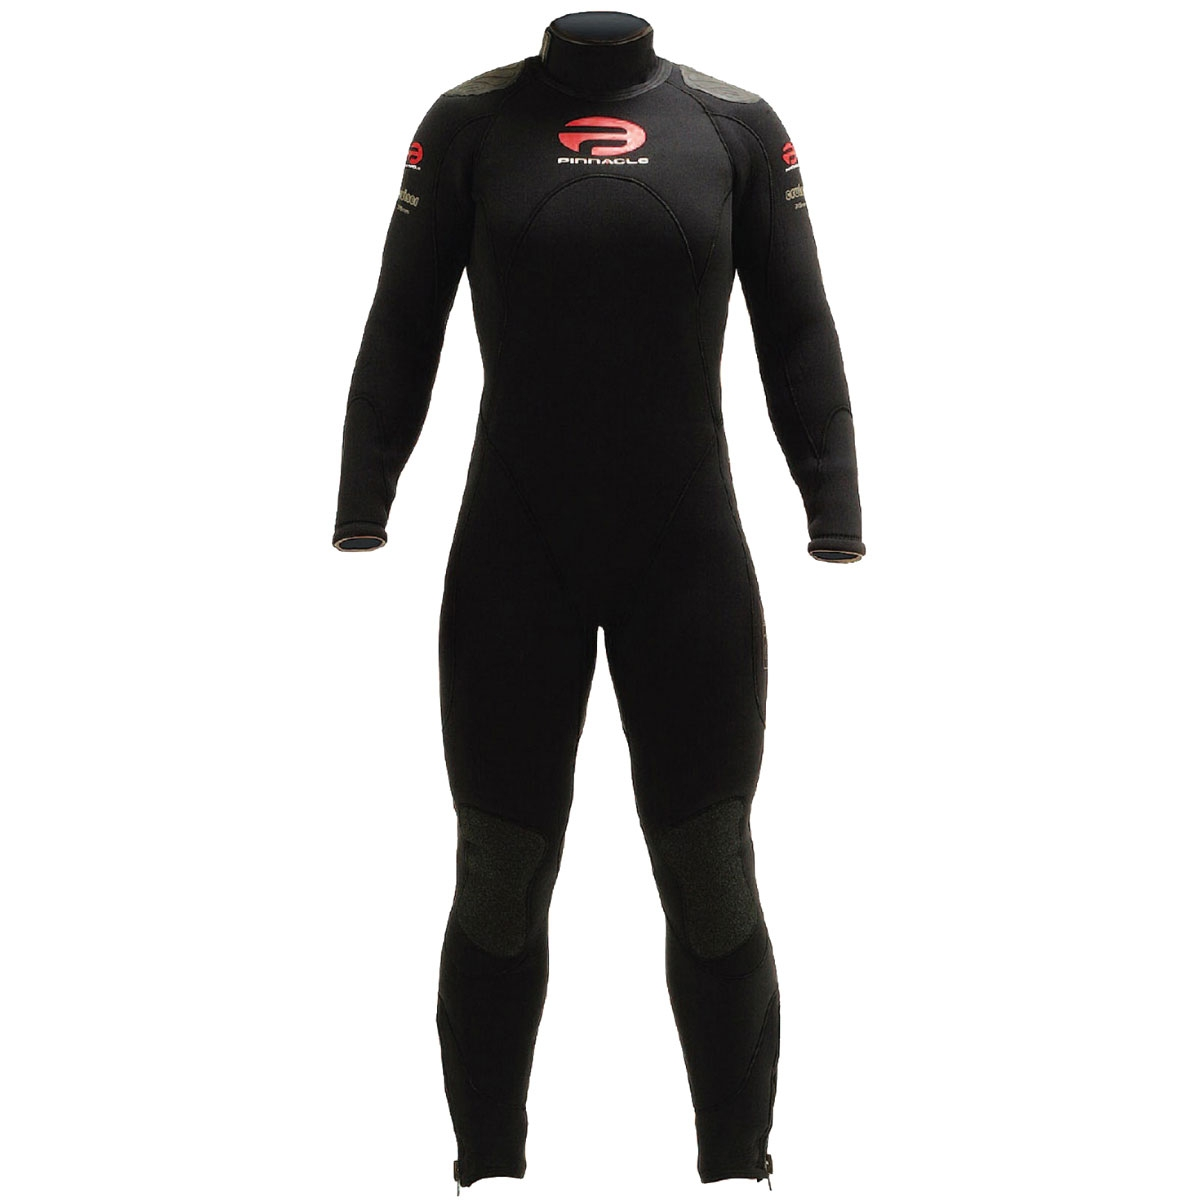 Pinnacle Cruiser 3 Wetsuit Female